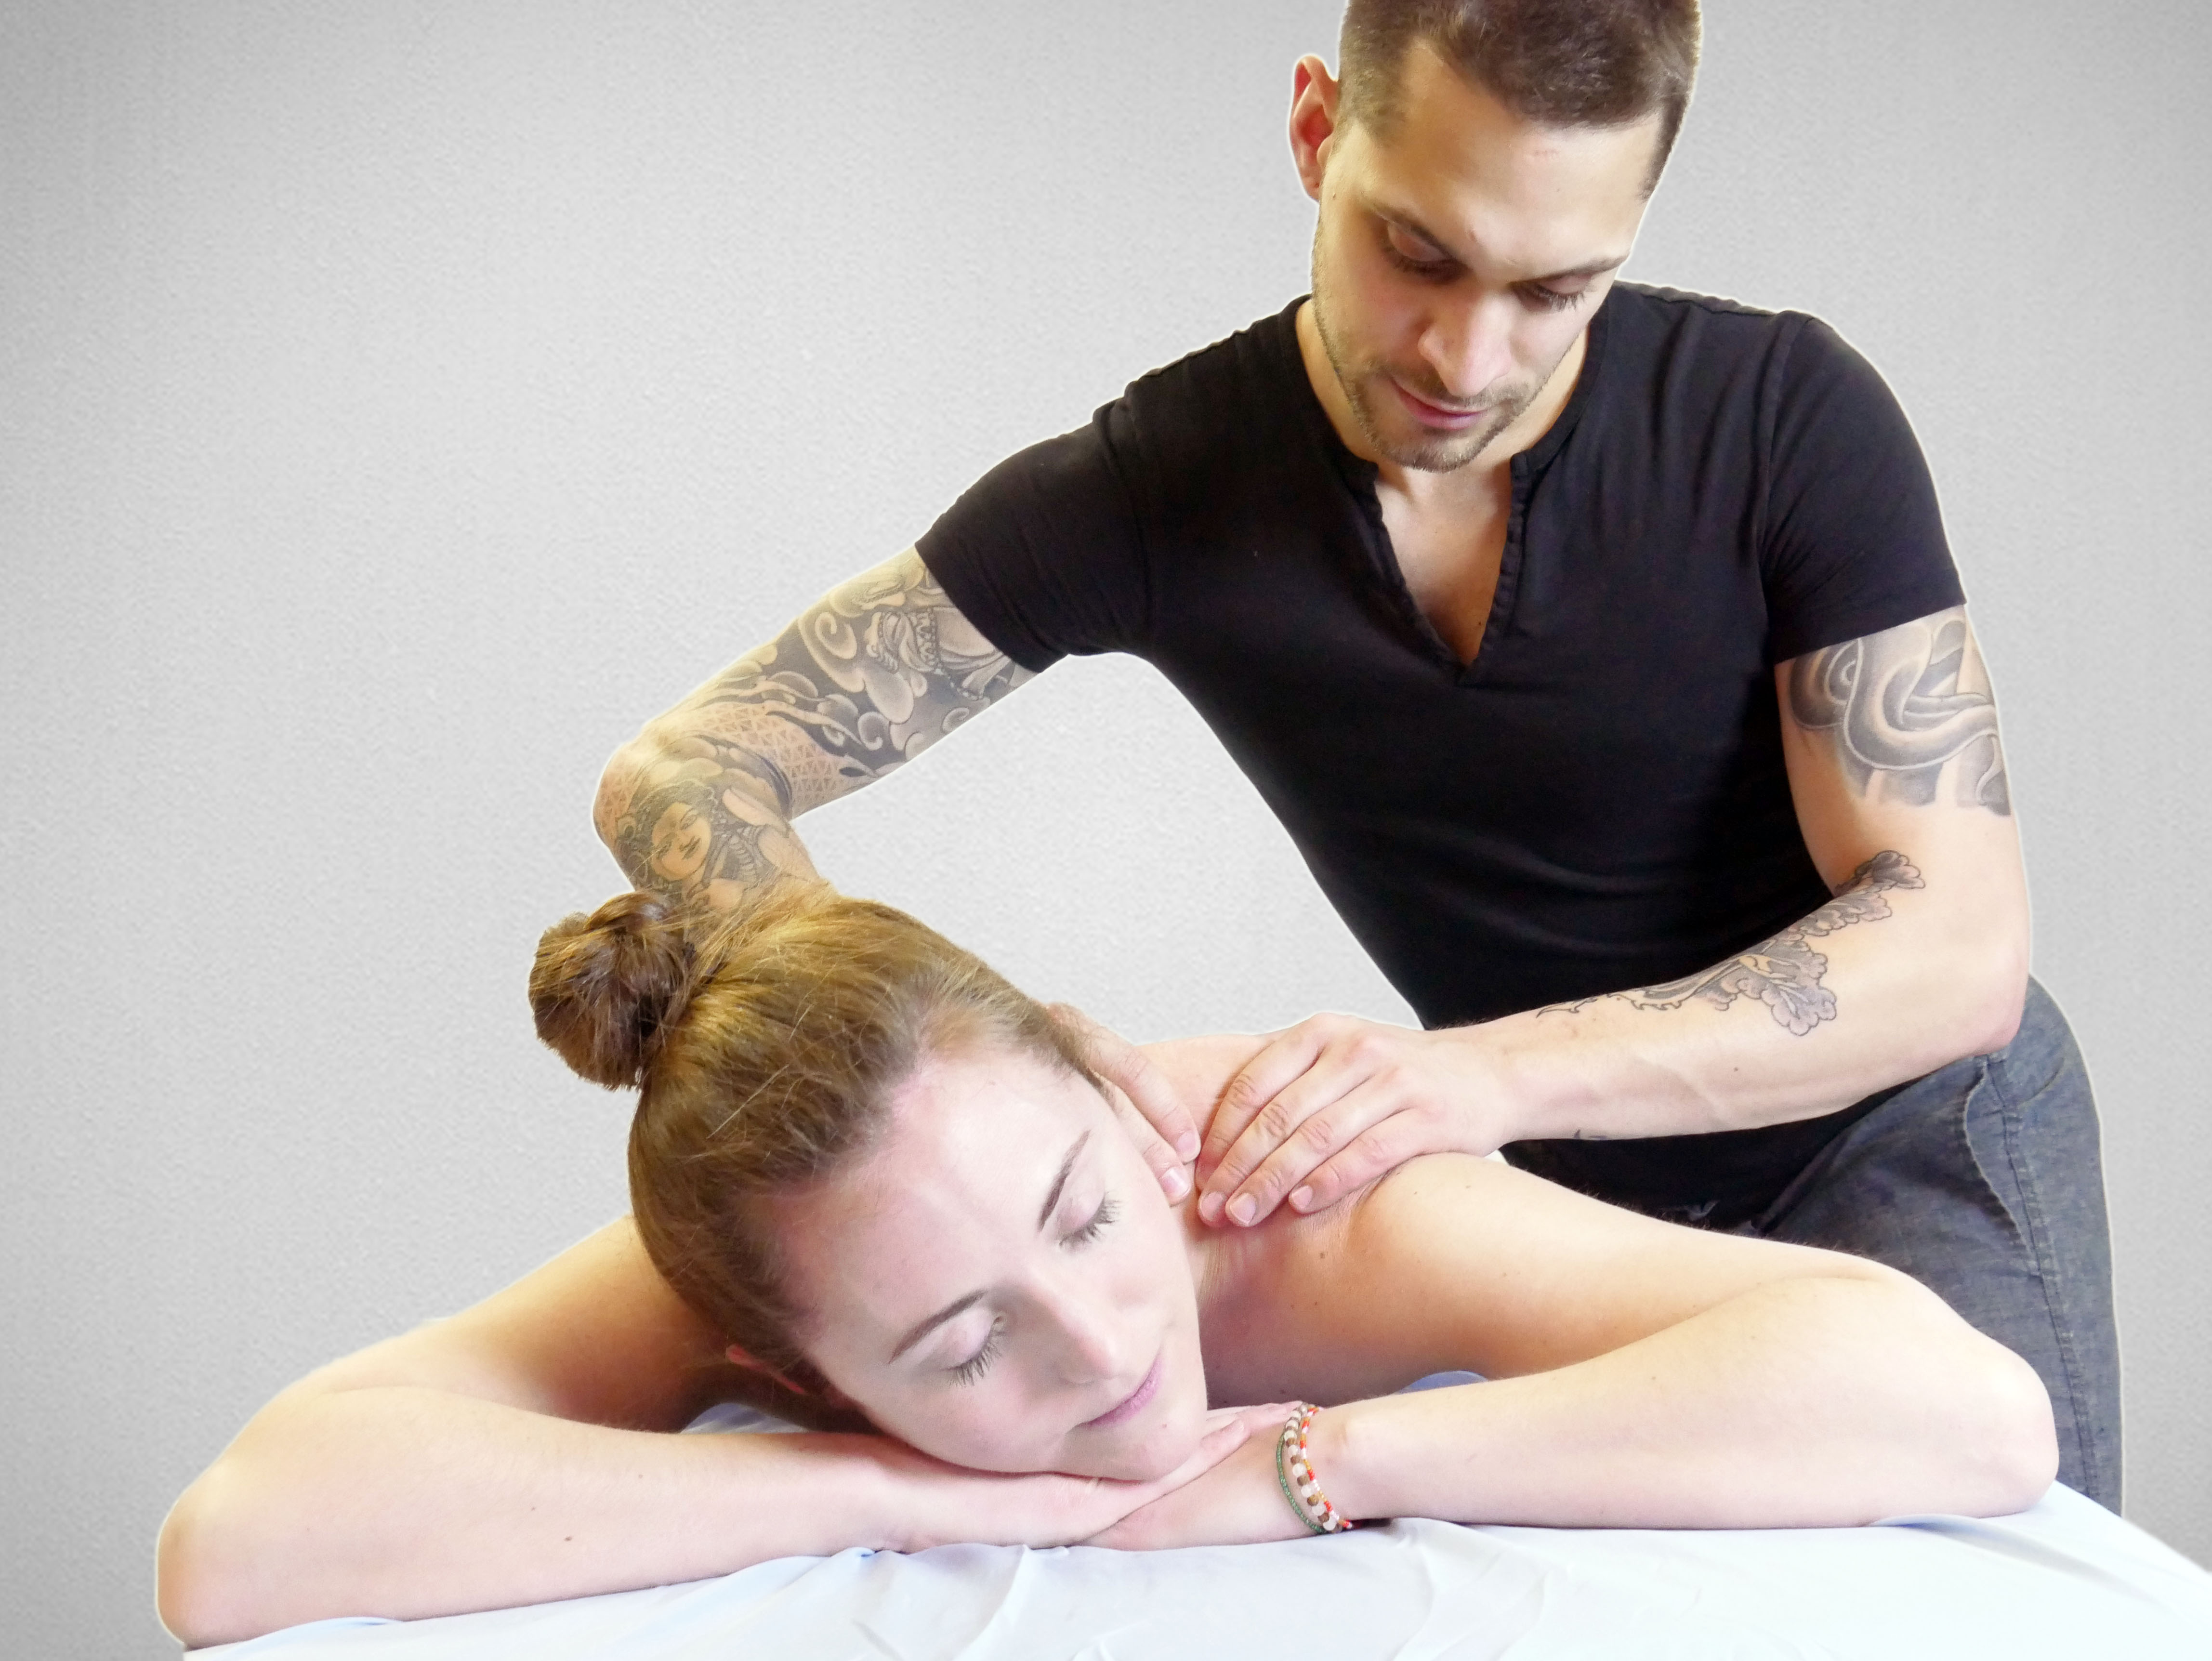 The Body Spot - Massage & Wellness - Well being for every body